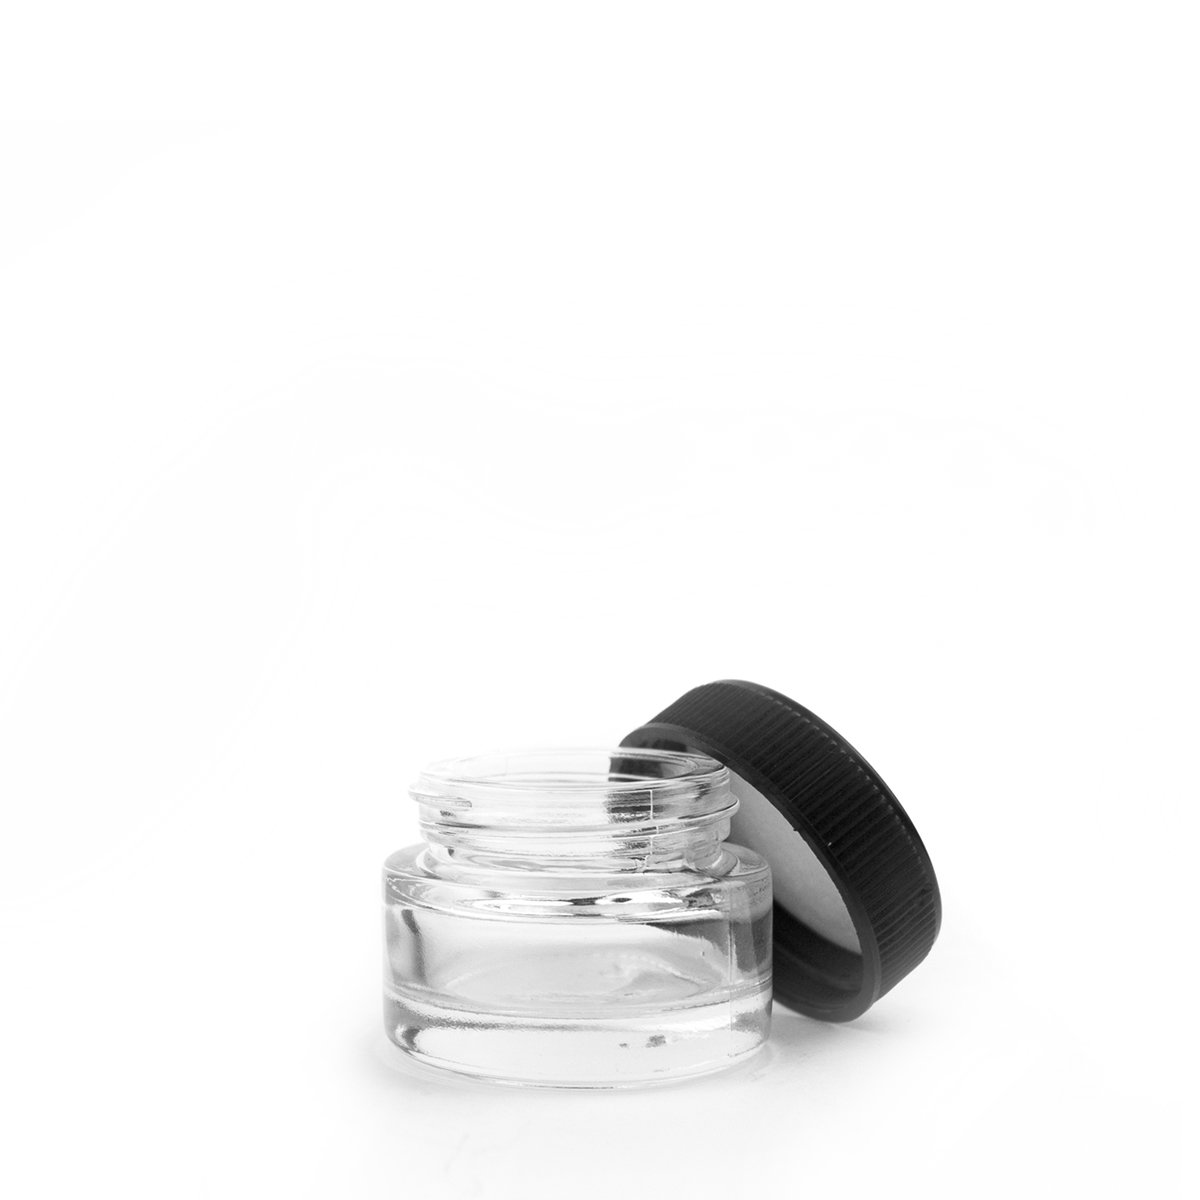 5mL Black Plastic Top Clear Glass Jar Container